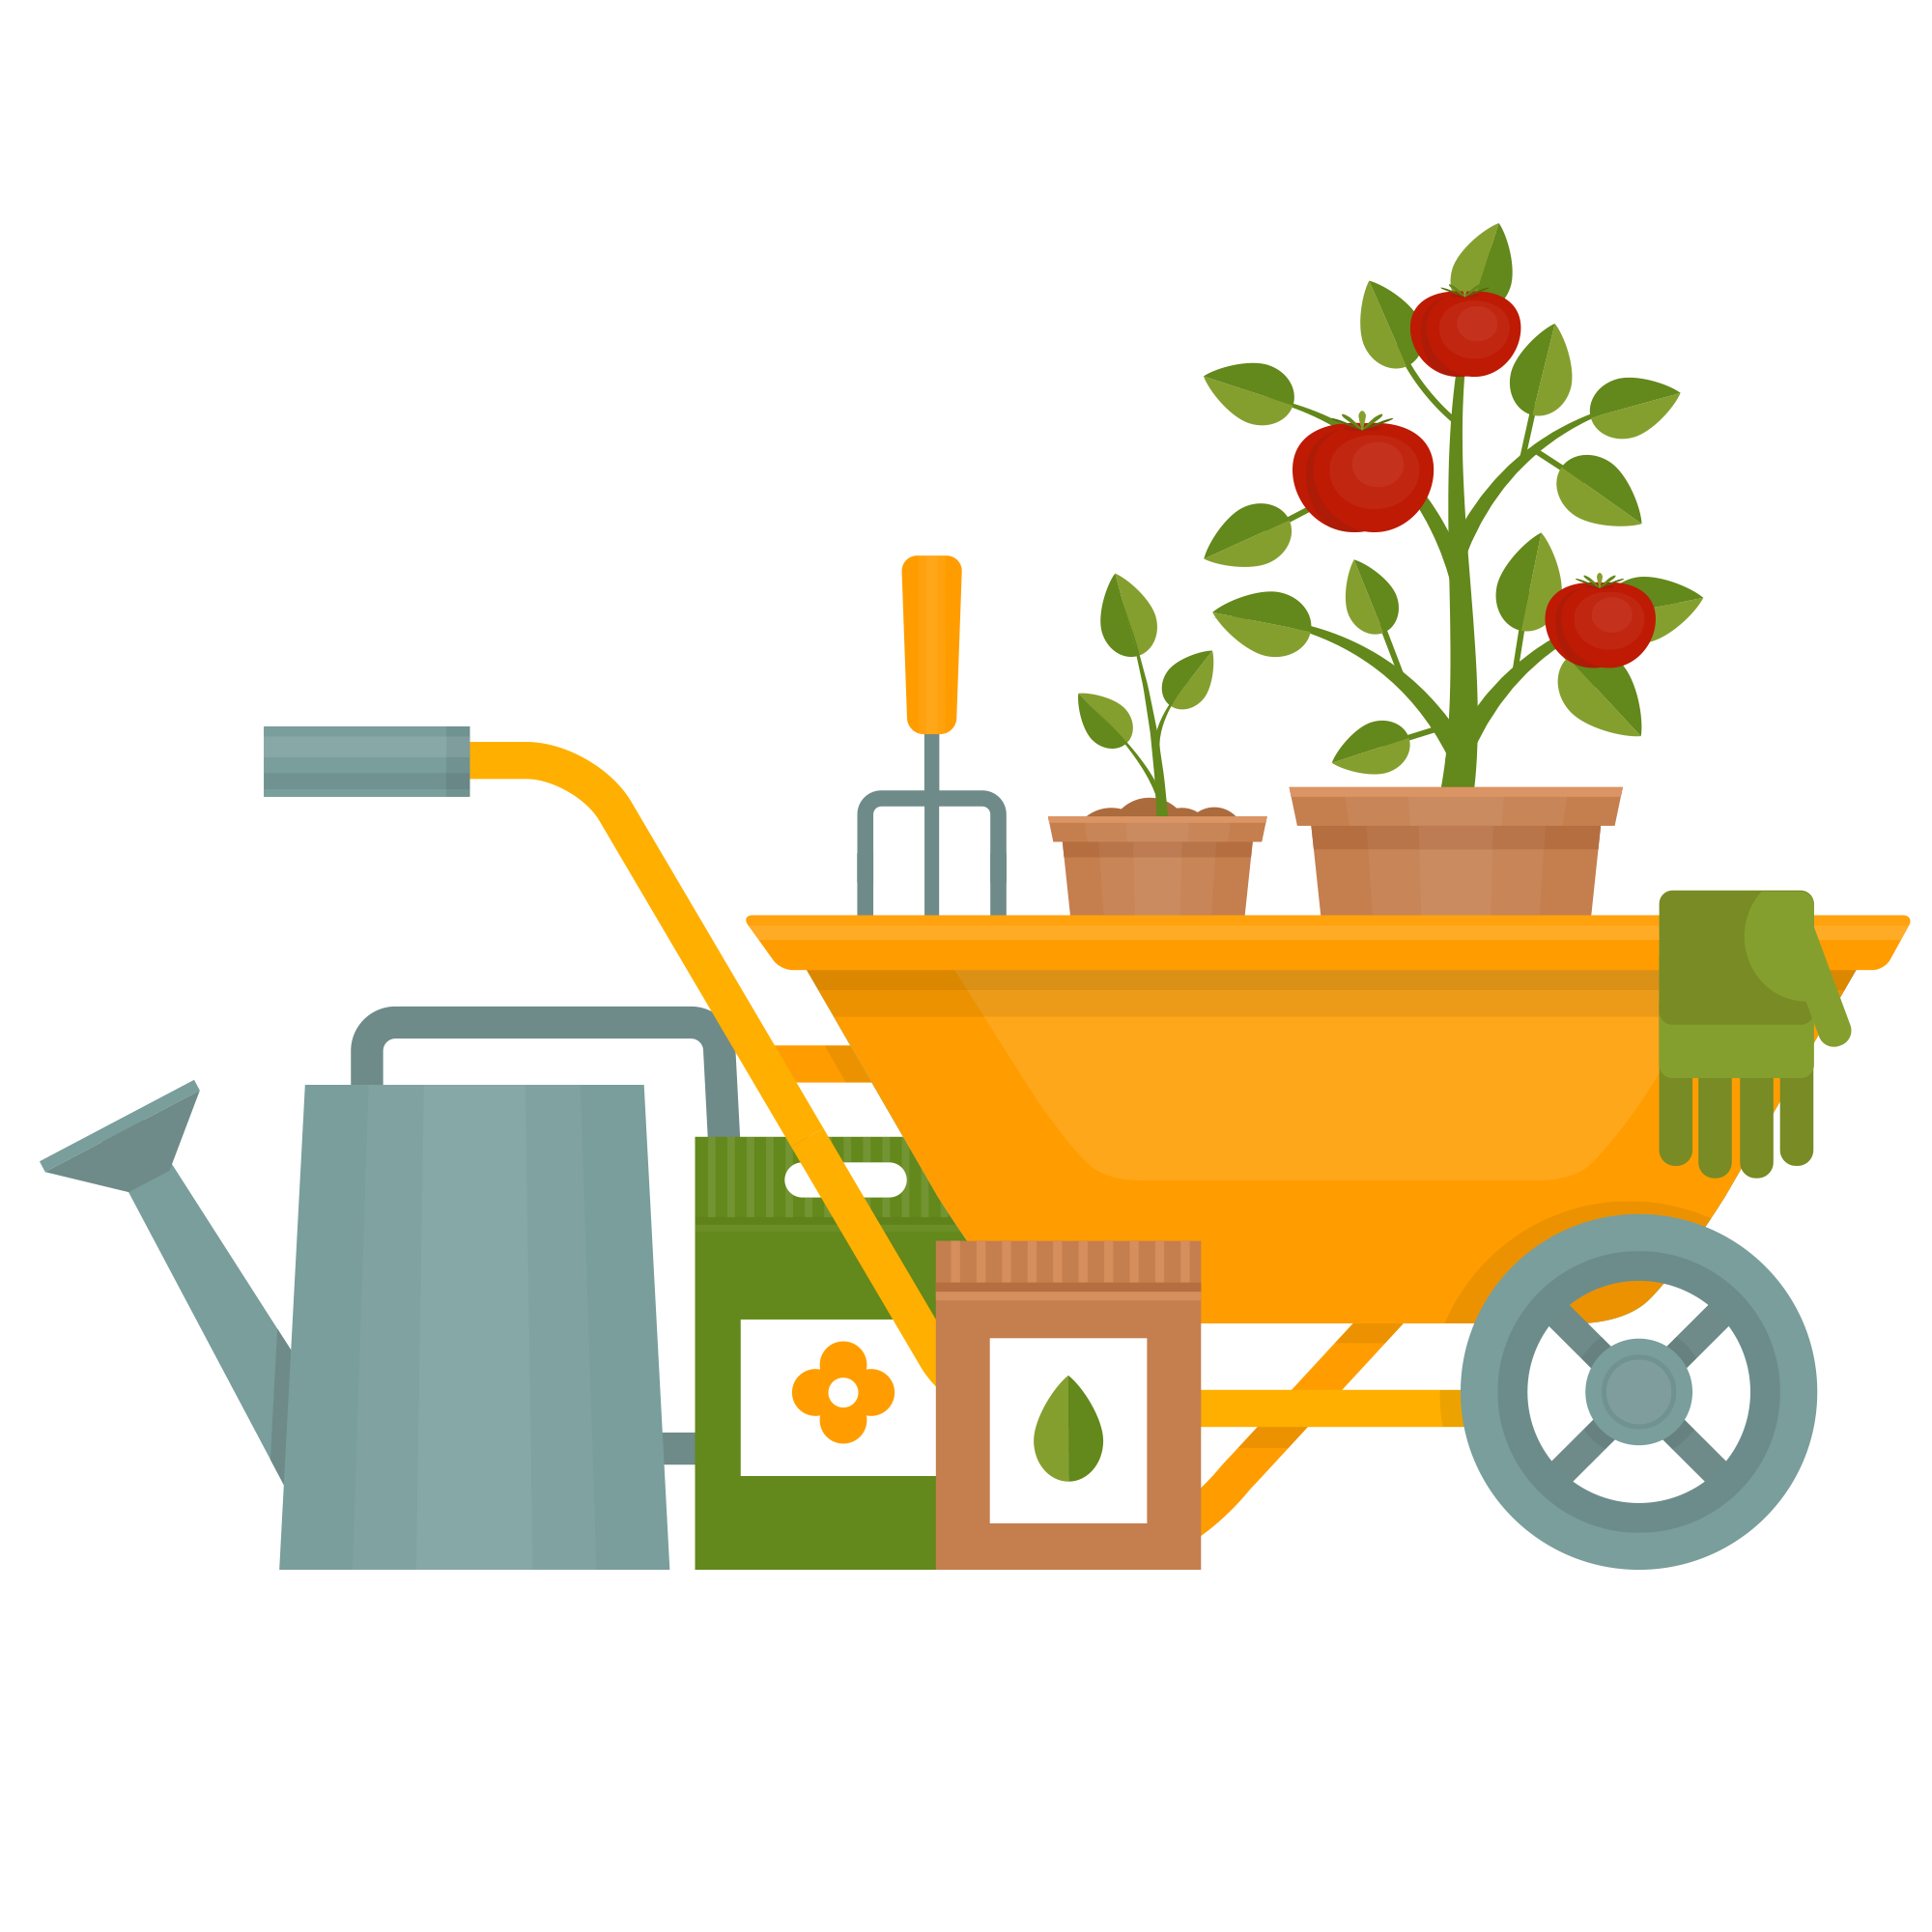 Gardening planters at bretby. Gardener clipart horticulture